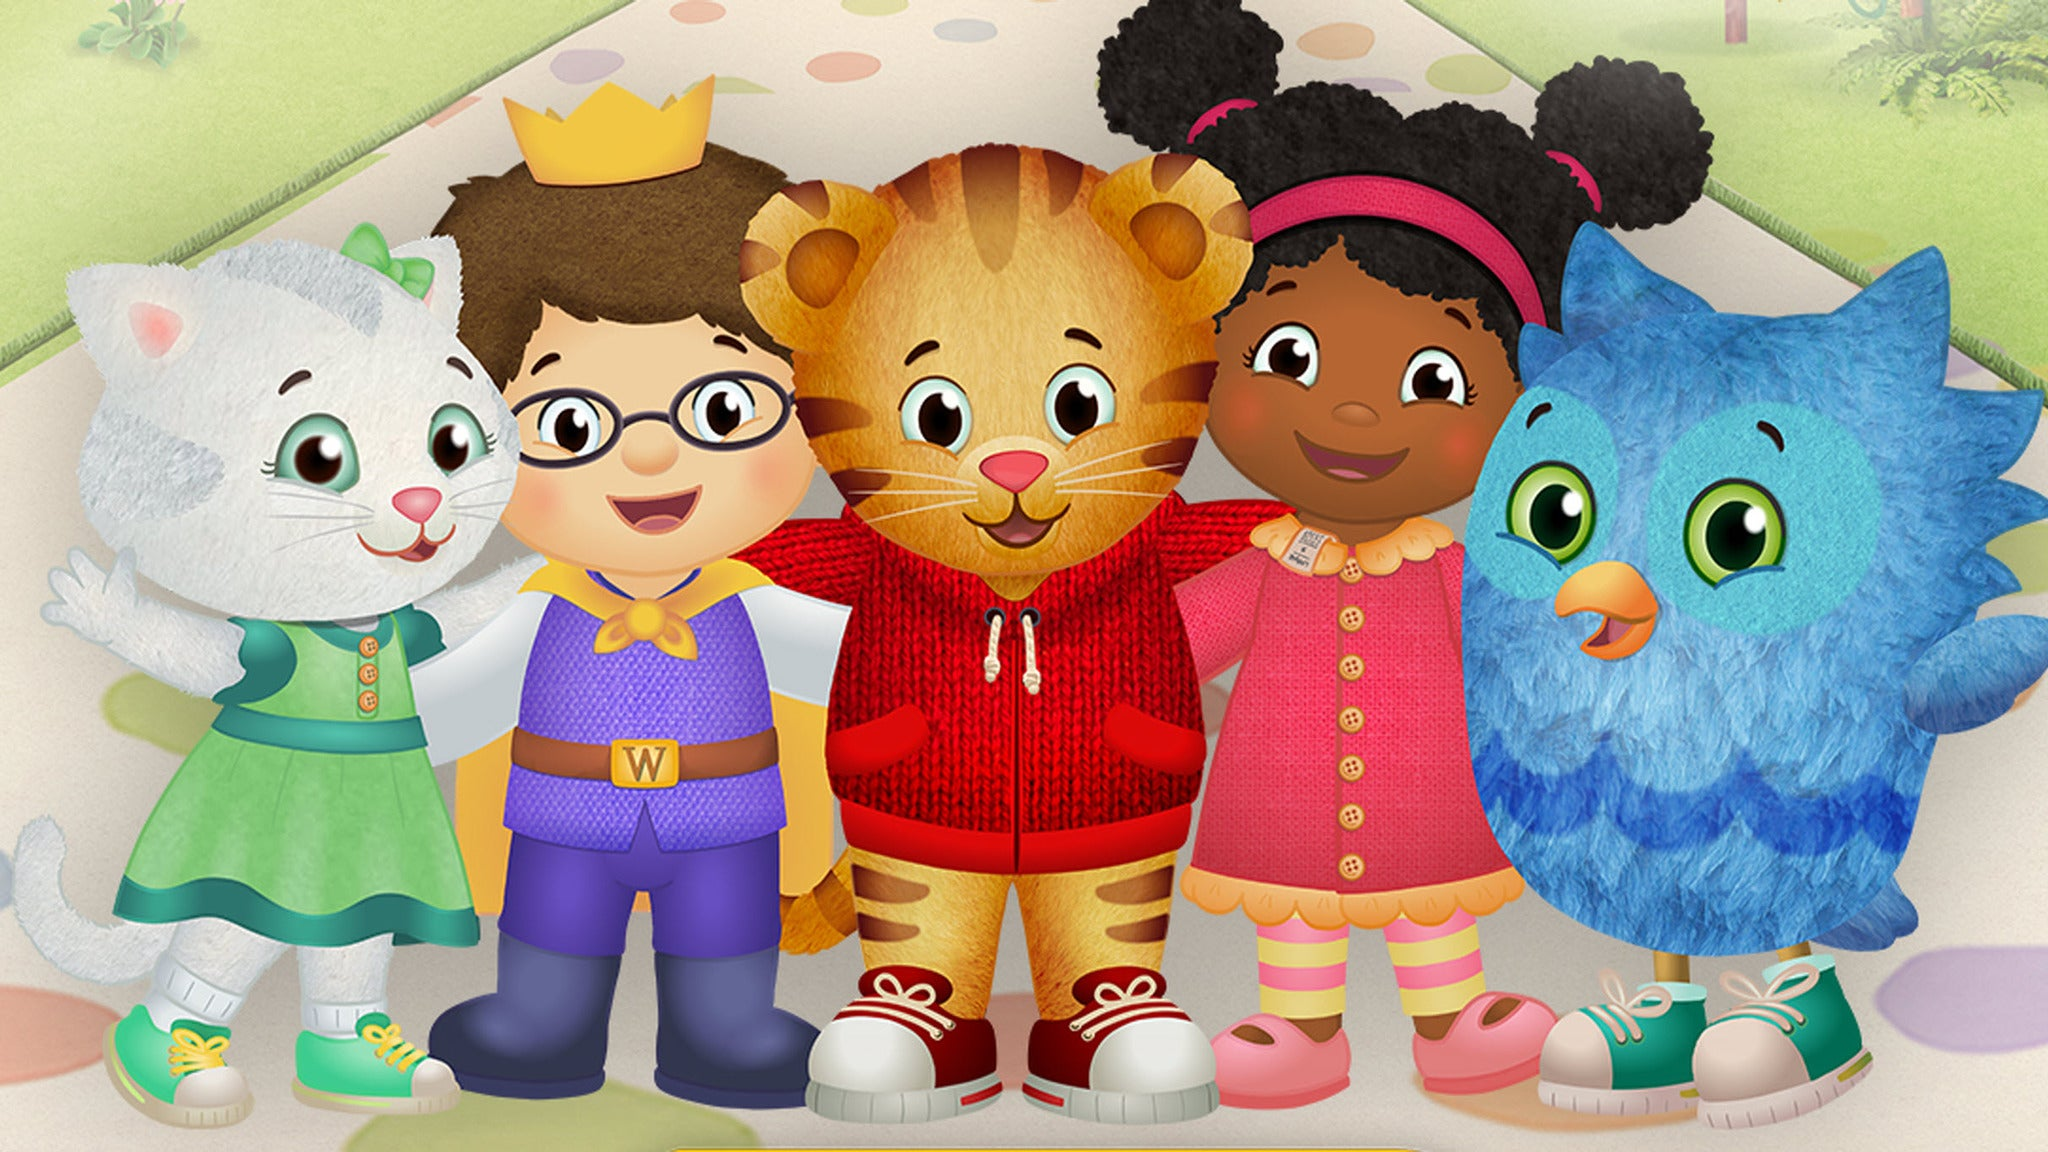 Daniel Tiger's Neighborhood at Elliott Hall of Music